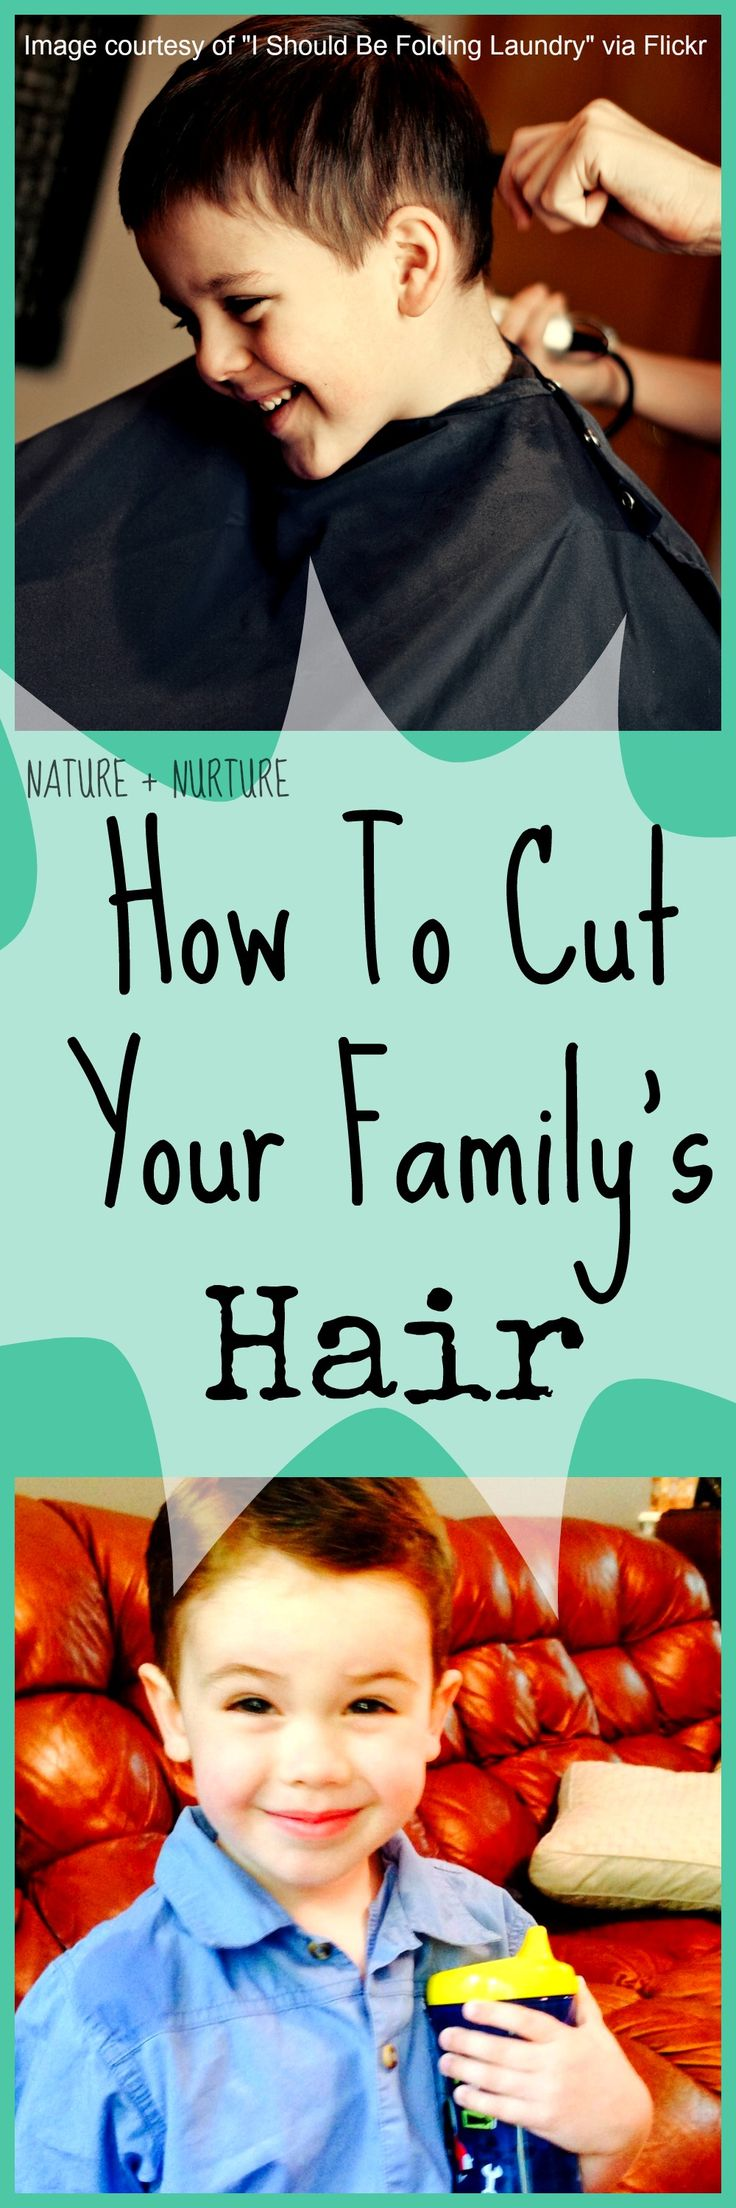 Researching how to cut your own hair can be intimidating, but a little information and practice can save you a LOT of money! In this post, I will share my DIY hair cutting journey along with practical tips on how to learn this wonderful skill. If you want to learn how to cut hair yourself, read this post!